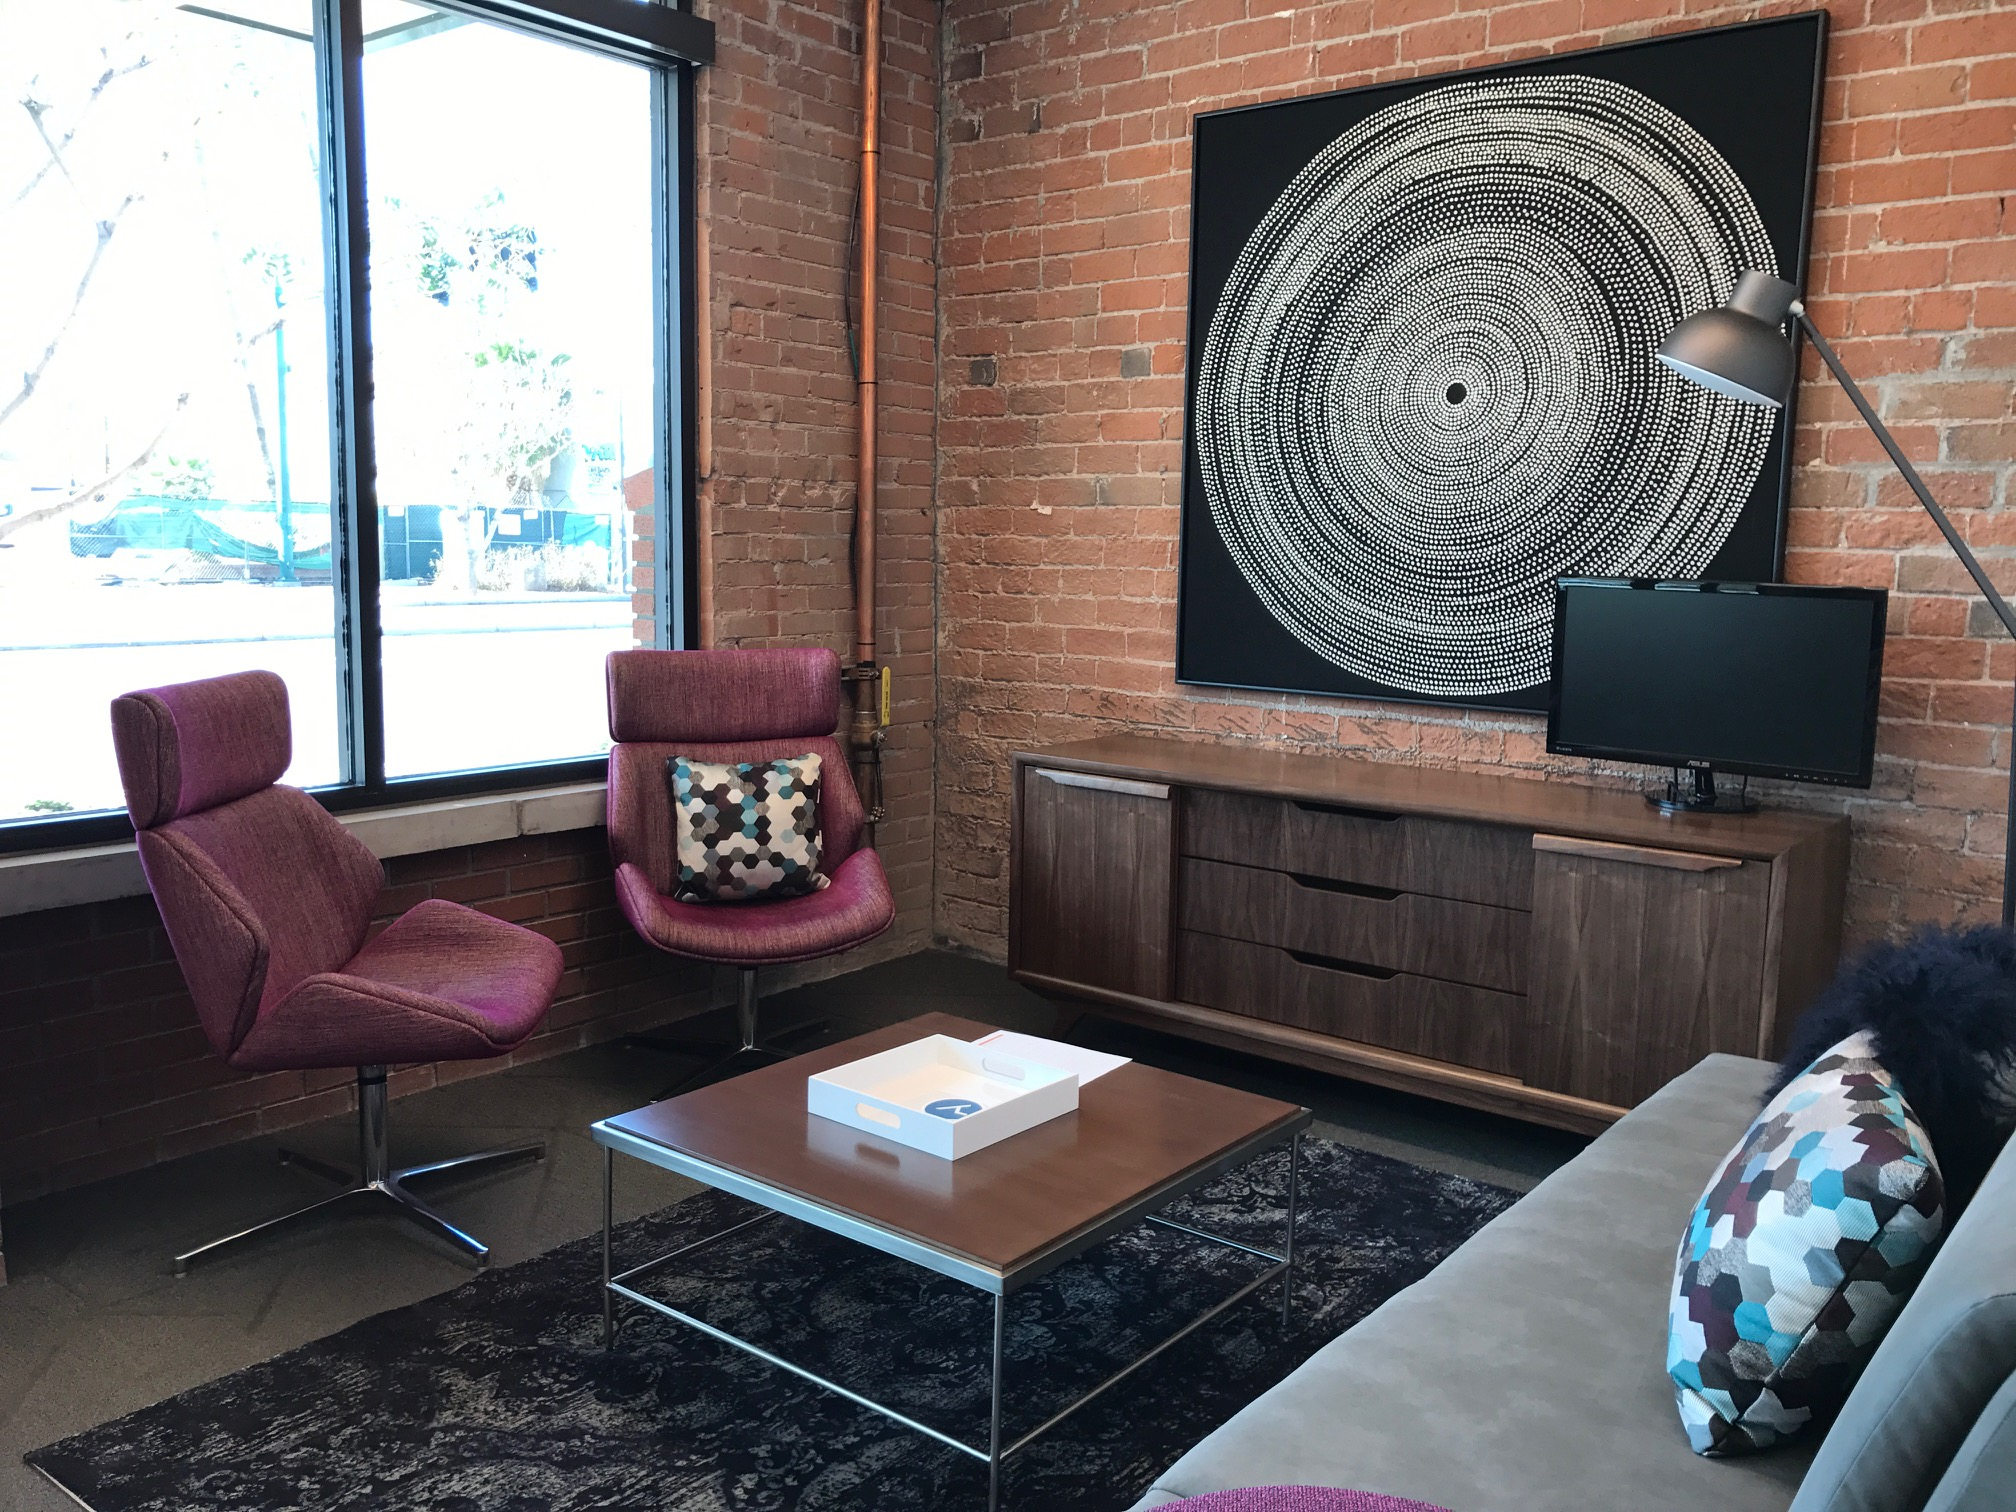 ... Downtown Phoenix Is Home To An Increasing Array Of Businesses. But One  Of The Most Recent Additions, Atmosphere Commercial Interiors, ...